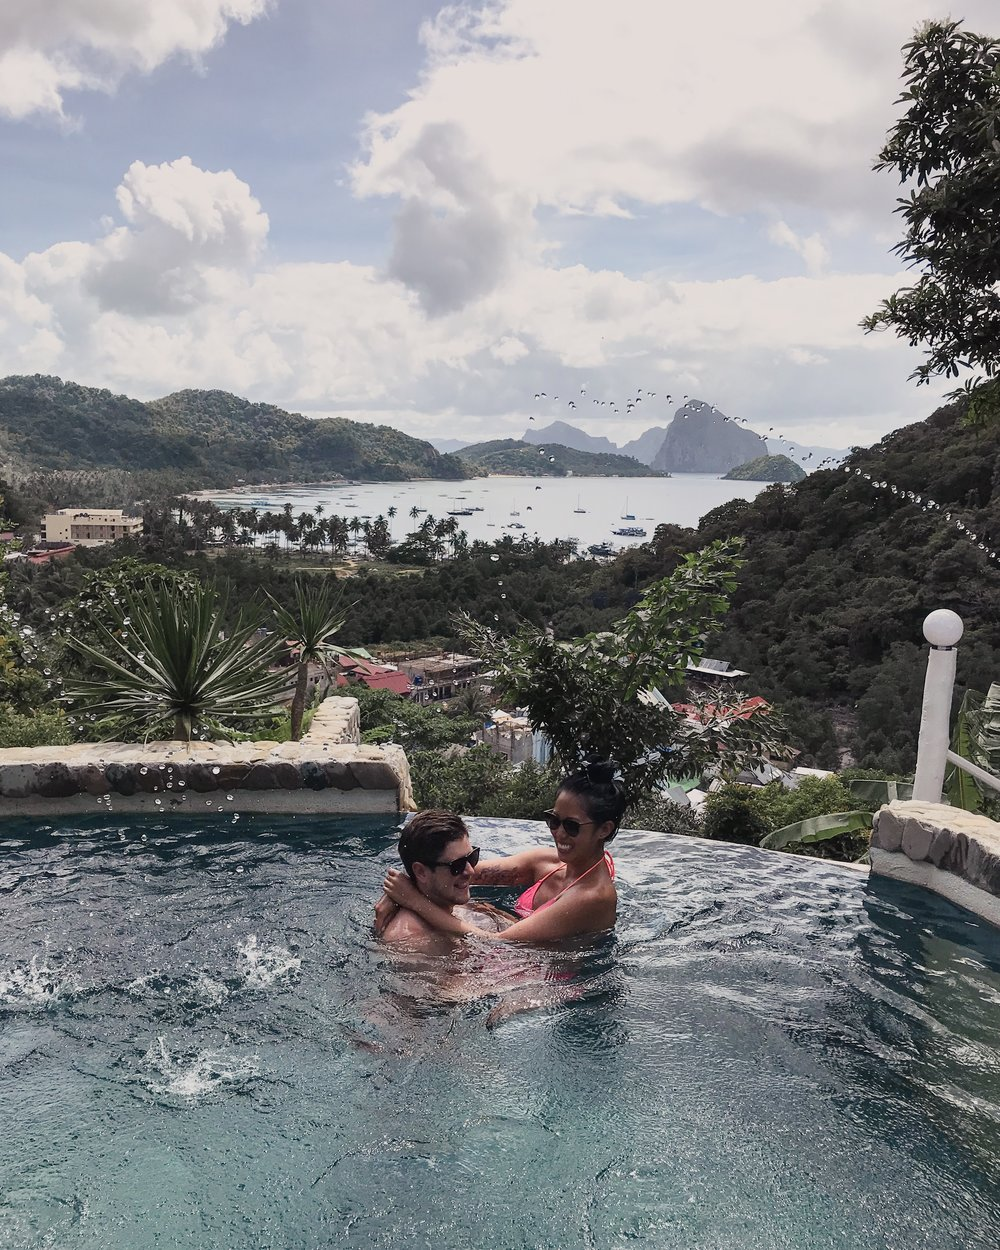 The private pool and view of El Nido from the highest villa at Viewdeck Cottages in El Nido thanks to our buddy vito.